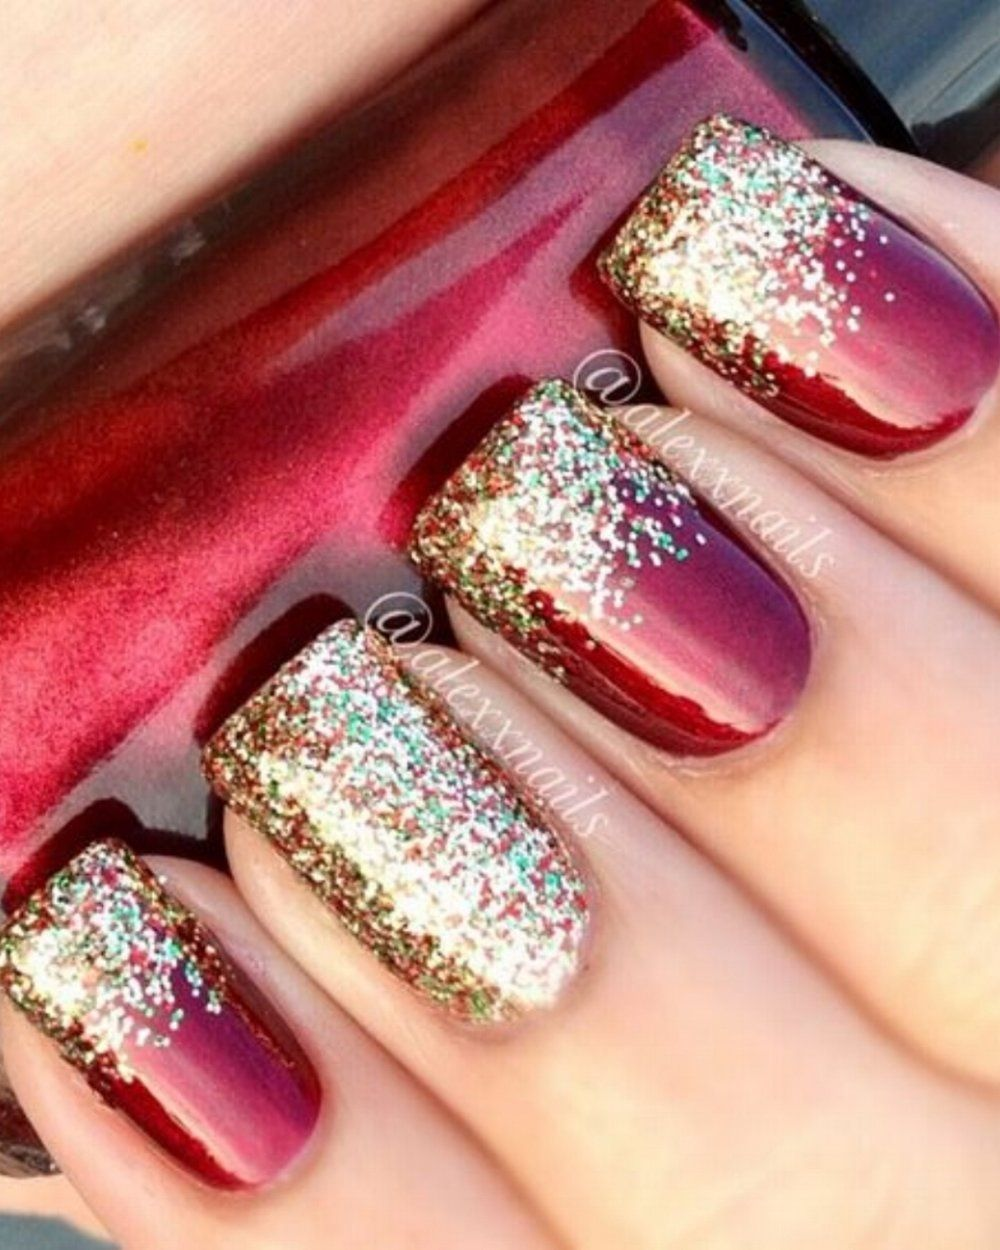 Festive Nail Art Deep Red With Gold And Multicolour Glitter Tips And Accent Nail Instagram Photo By Ale Festival Nails Red Nails Glitter Red Christmas Nails